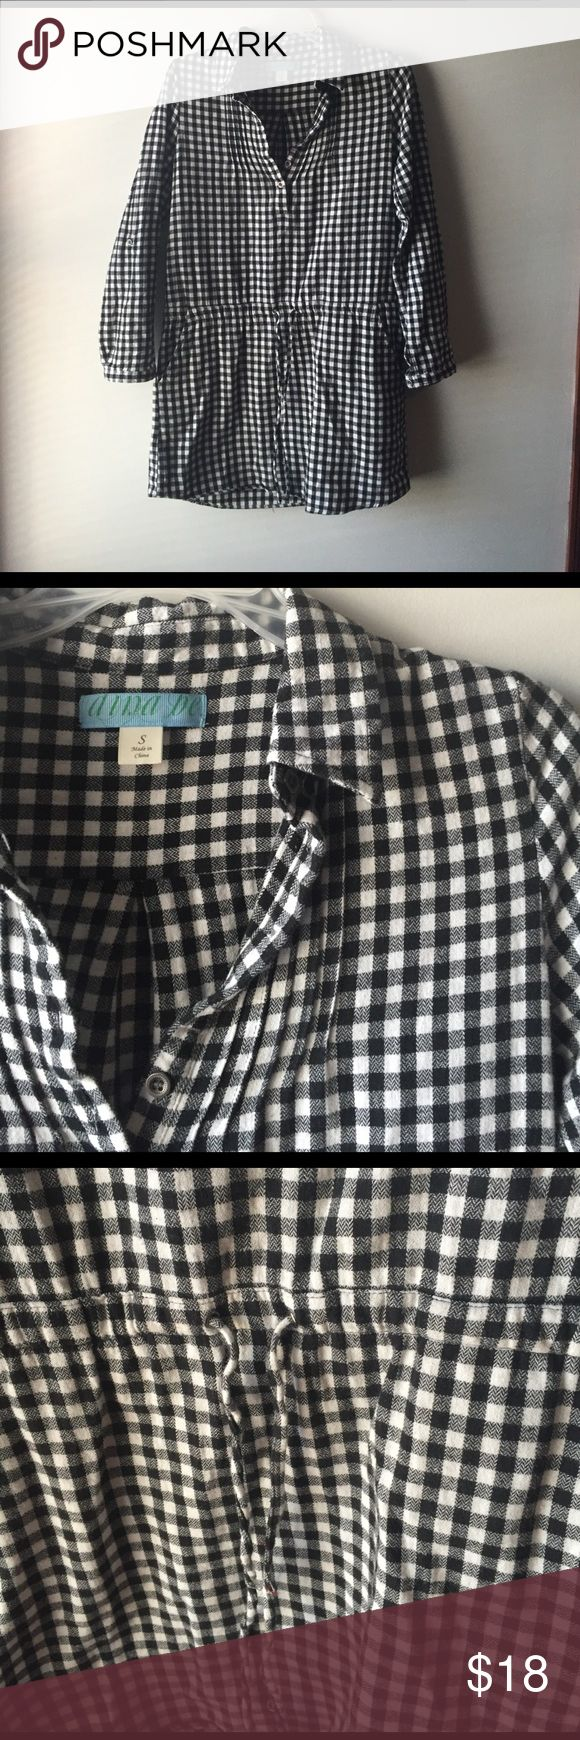 1 day sale! Francesca's gingham shirt dress ⬛️ EUC flannel drop waist gingham blank and white collared shirt dress with pockets and waist tie, super cute! ⬛️ Francesca's Collections Dresses Long Sleeve